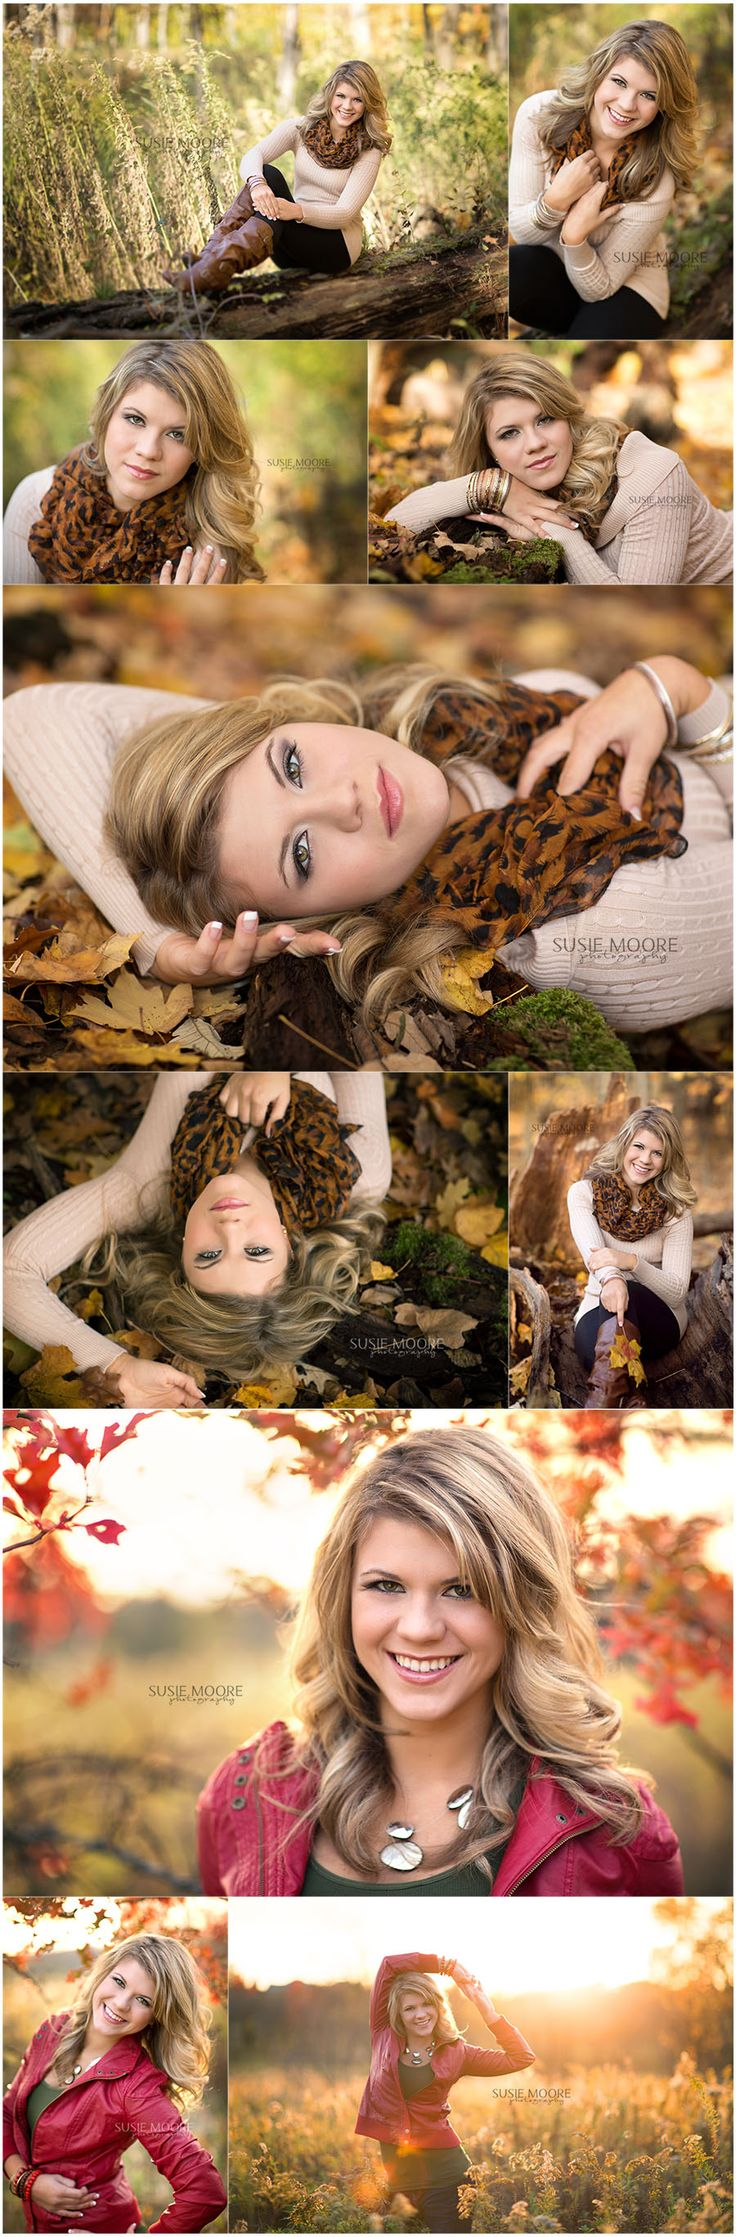 Paige | Lincoln-Way Central High School | Class of 2013 | Chicago IL Senior Photographer